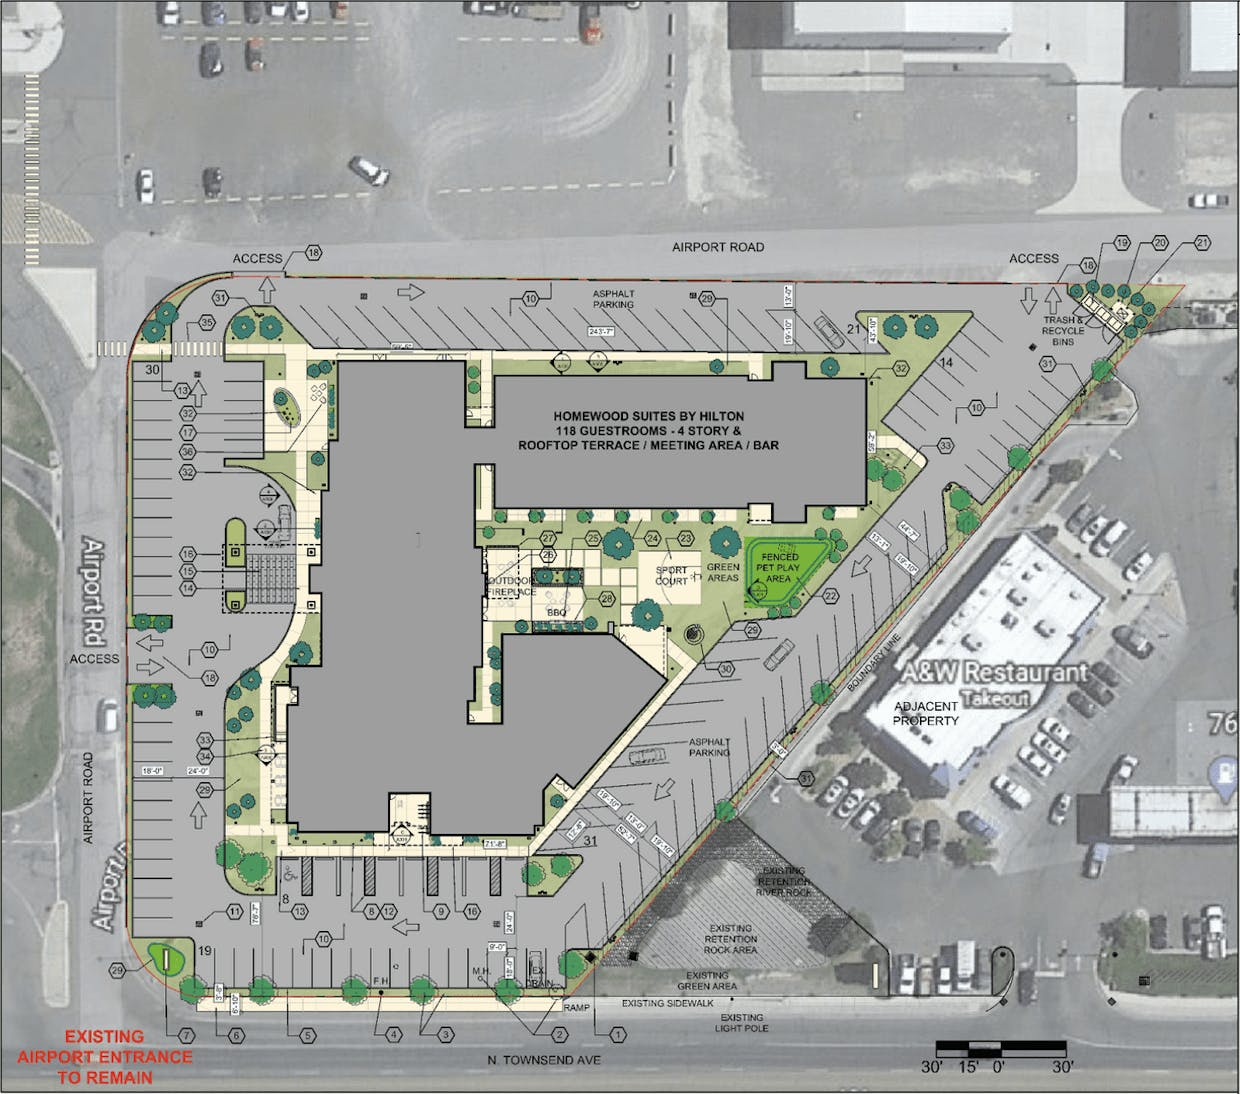 This overall site plan depicts the layout of the Homewood Suites by Hilton and surrounding parking area planned for 100 Airport Road.